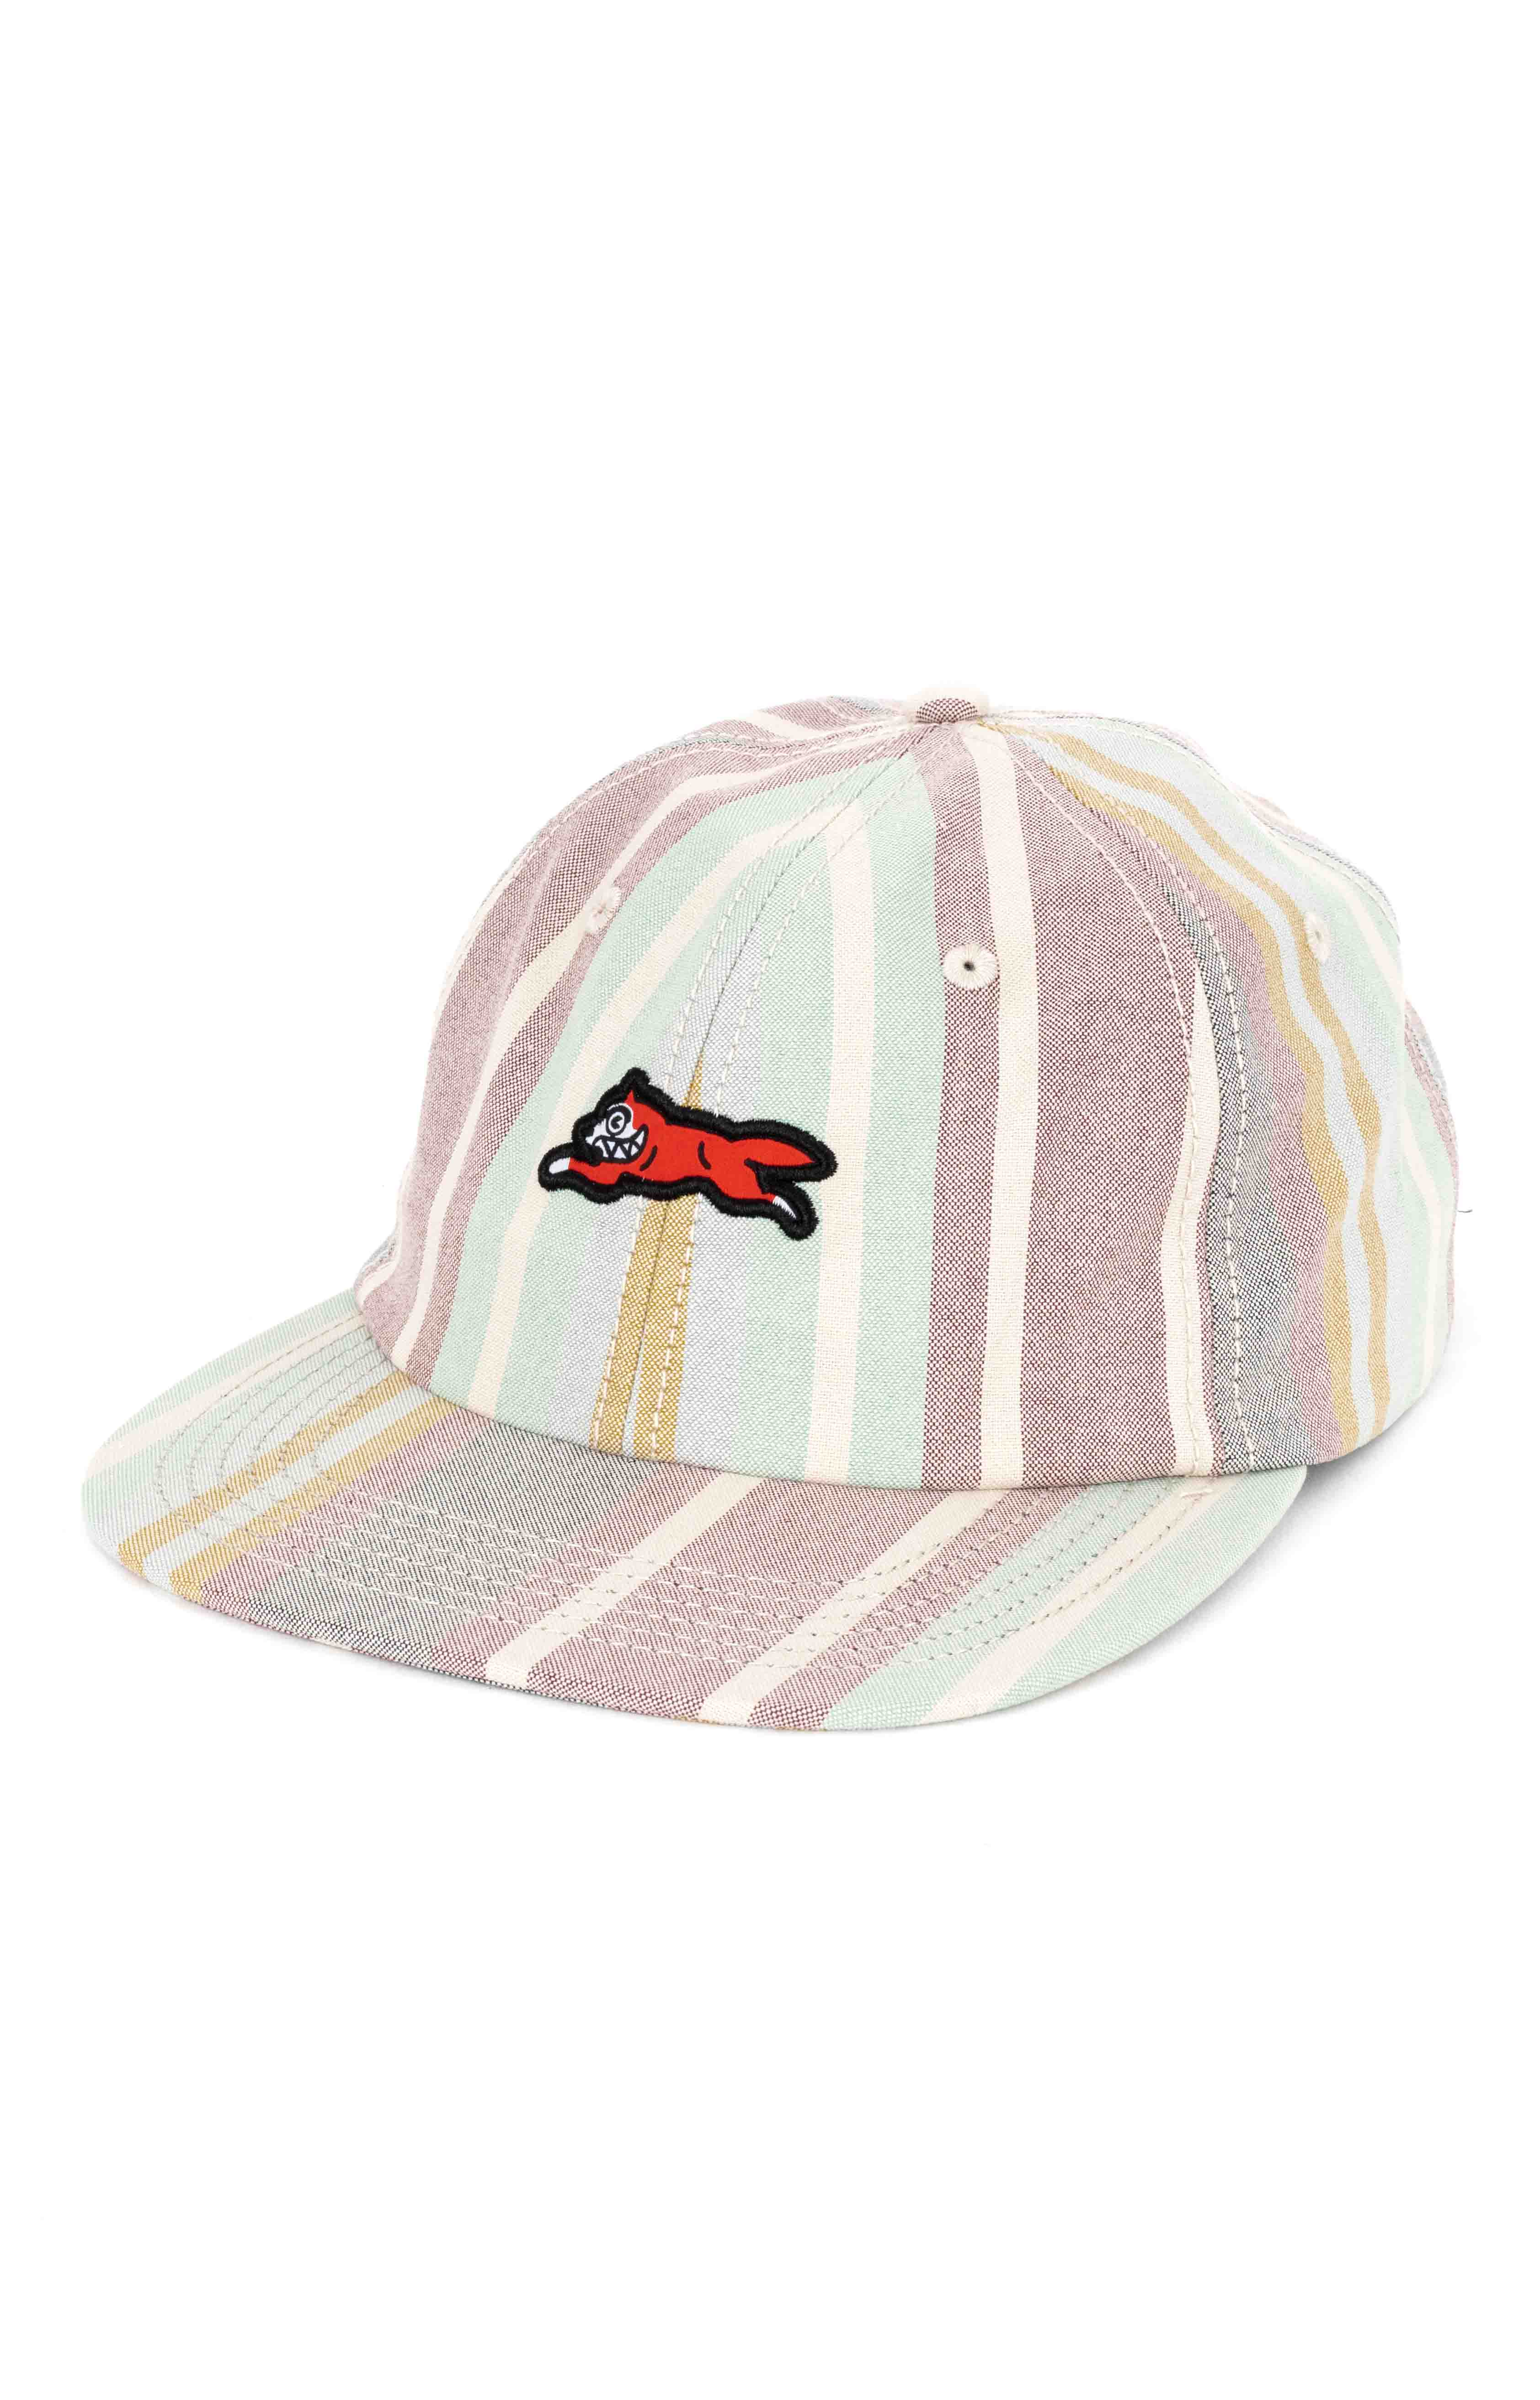 Ray Hat - Multi